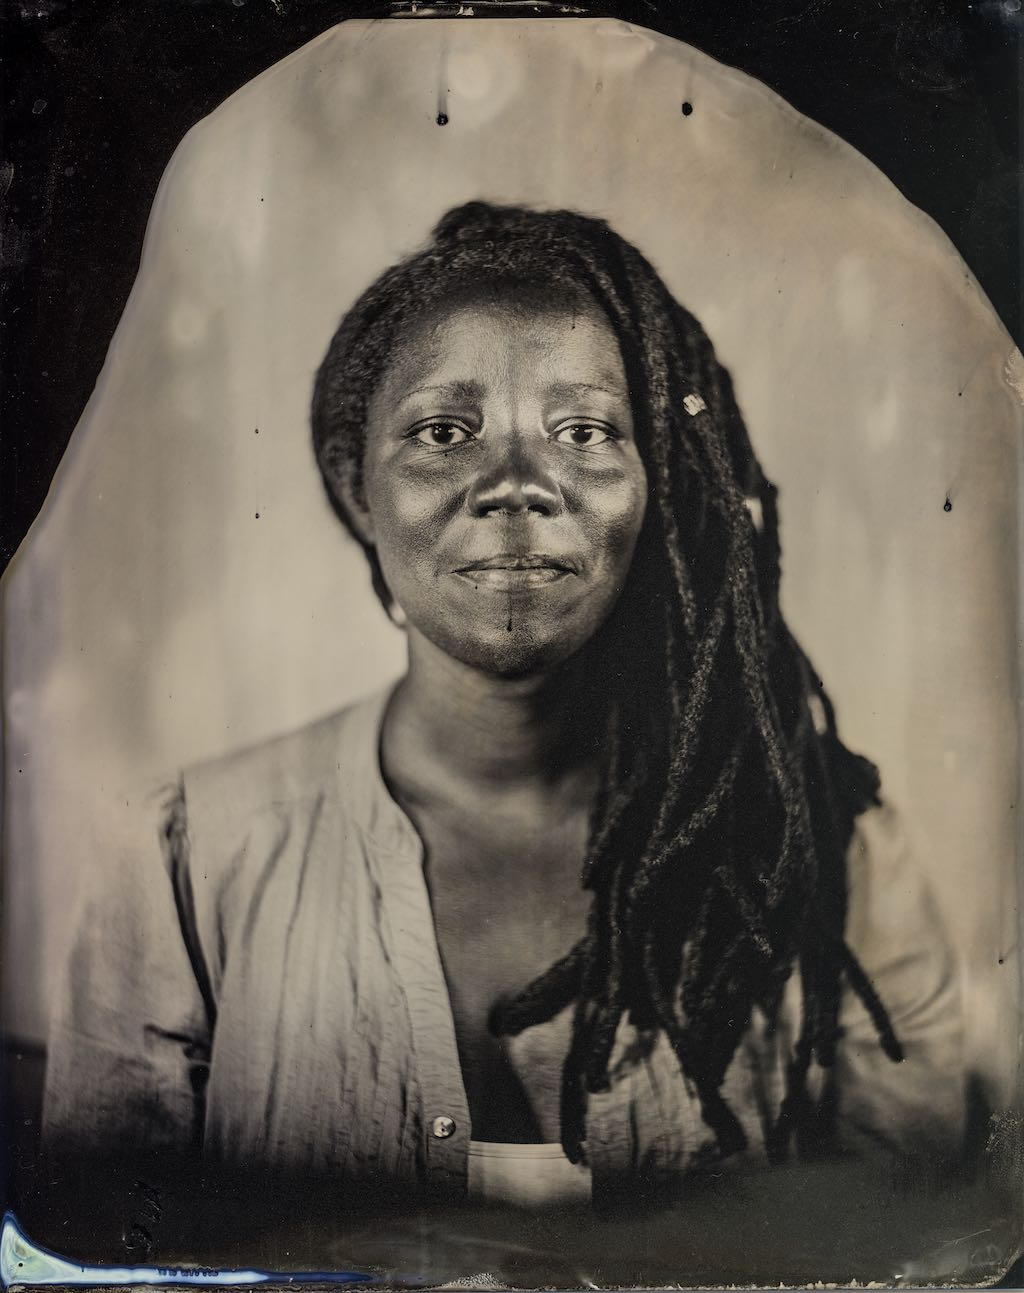 Black & White tintype photo of cultural worker, Mi'Jan Celie